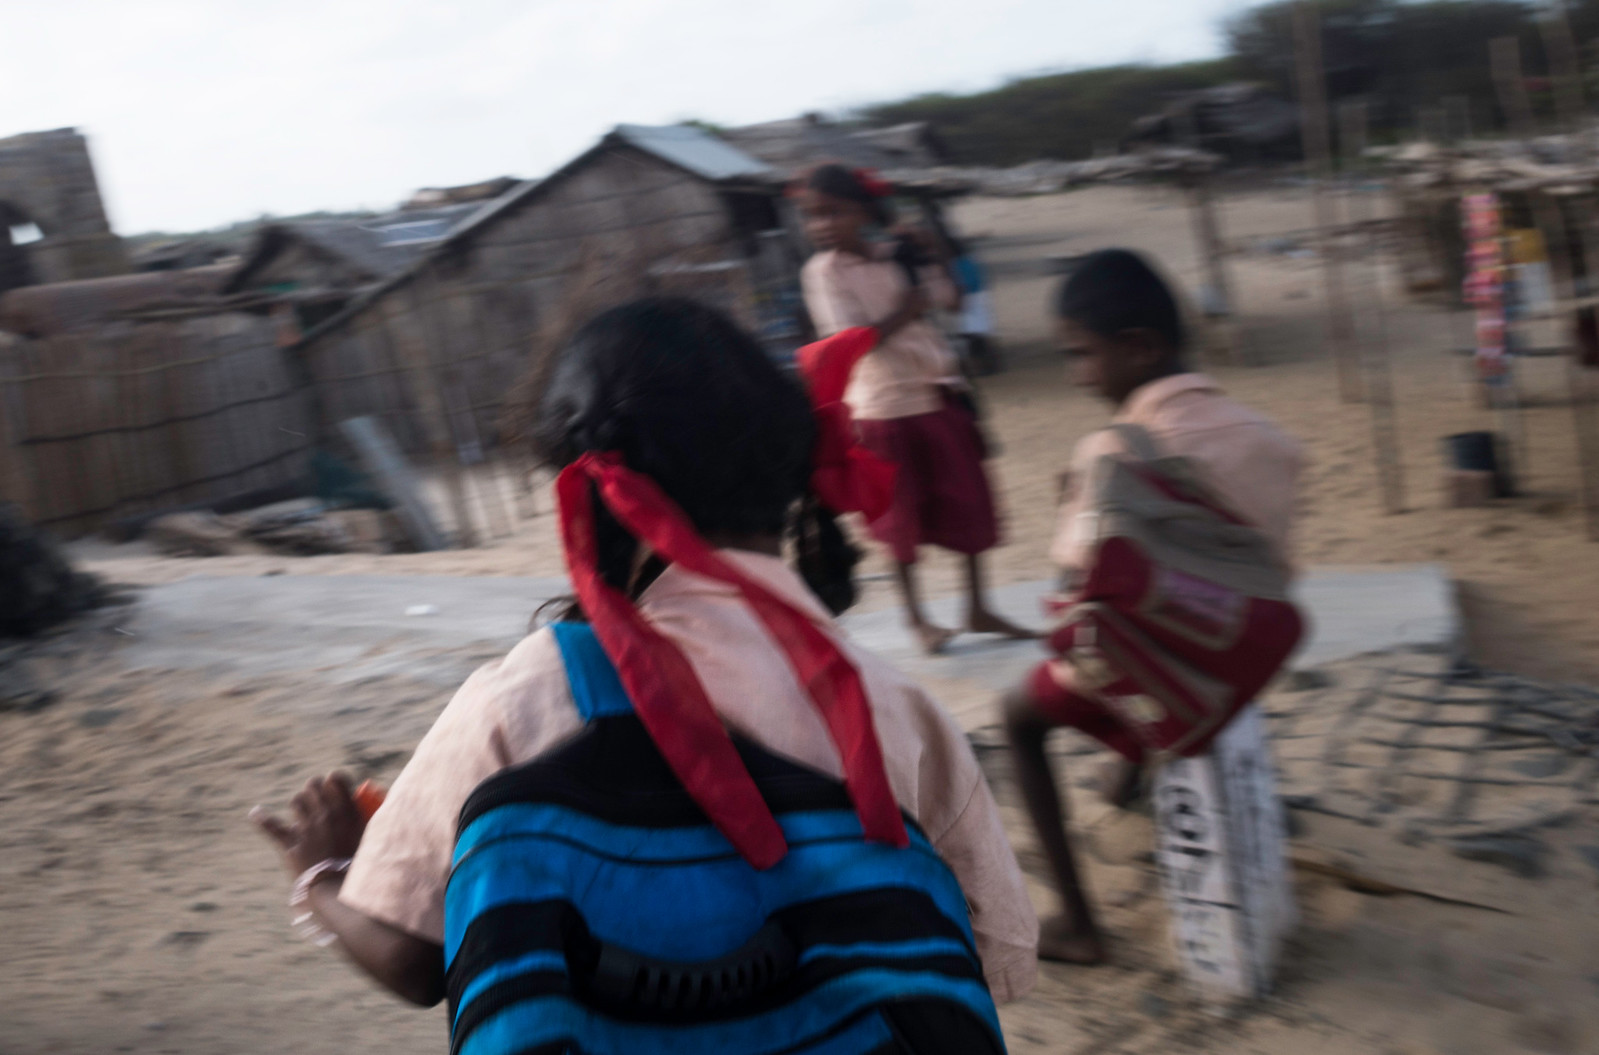 The village has two primary schools but no secondary school. Children often drop school after class 8th